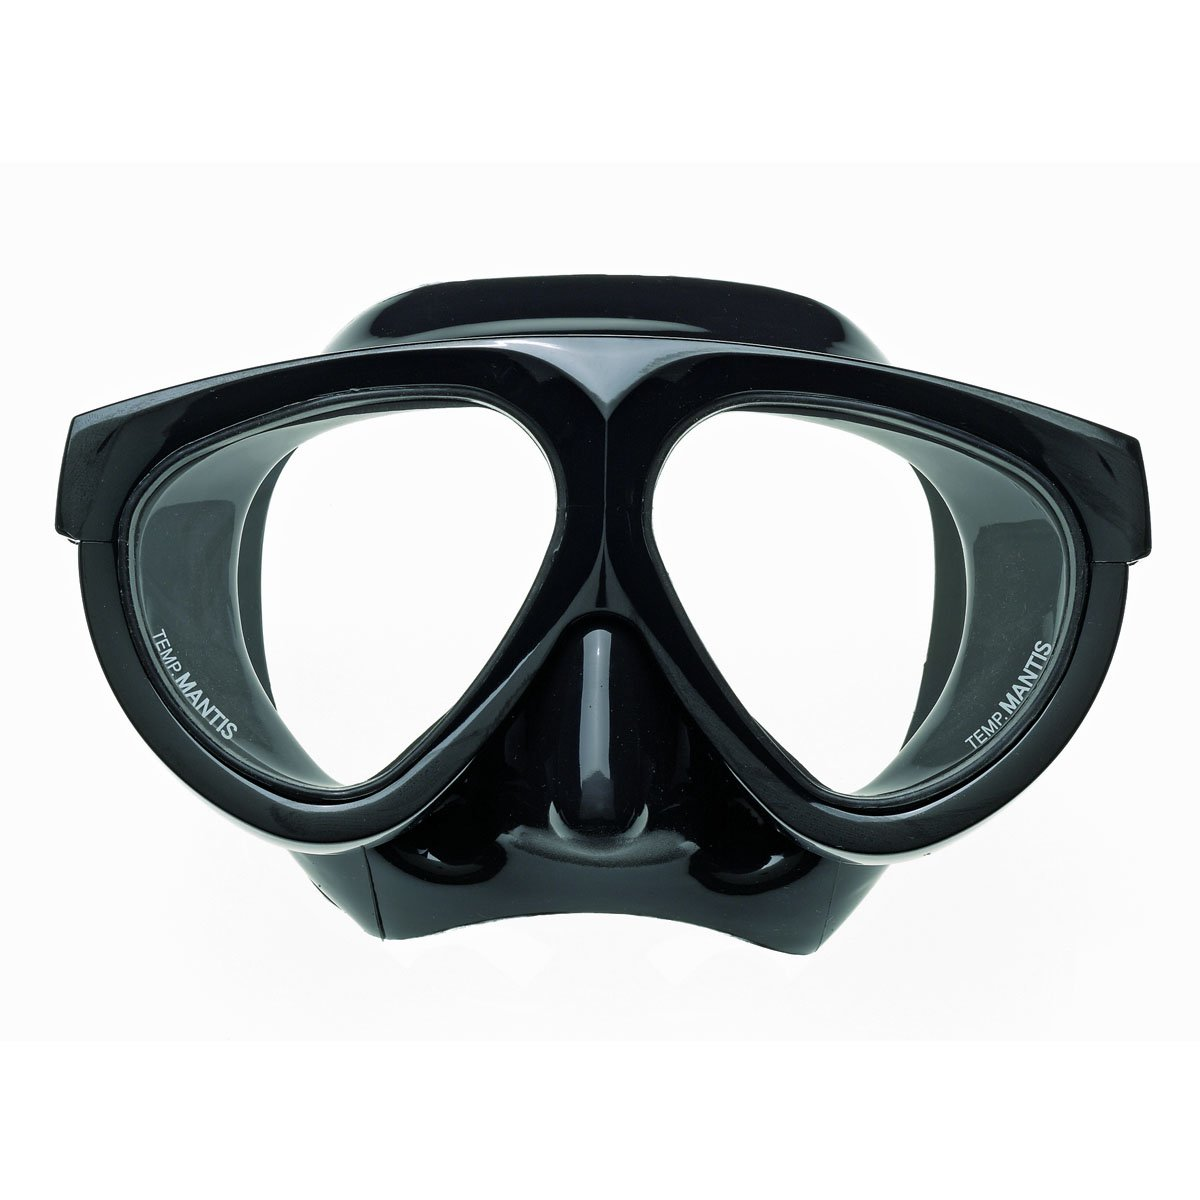 Riffe Mantis Mask for Diving and Spearfishing